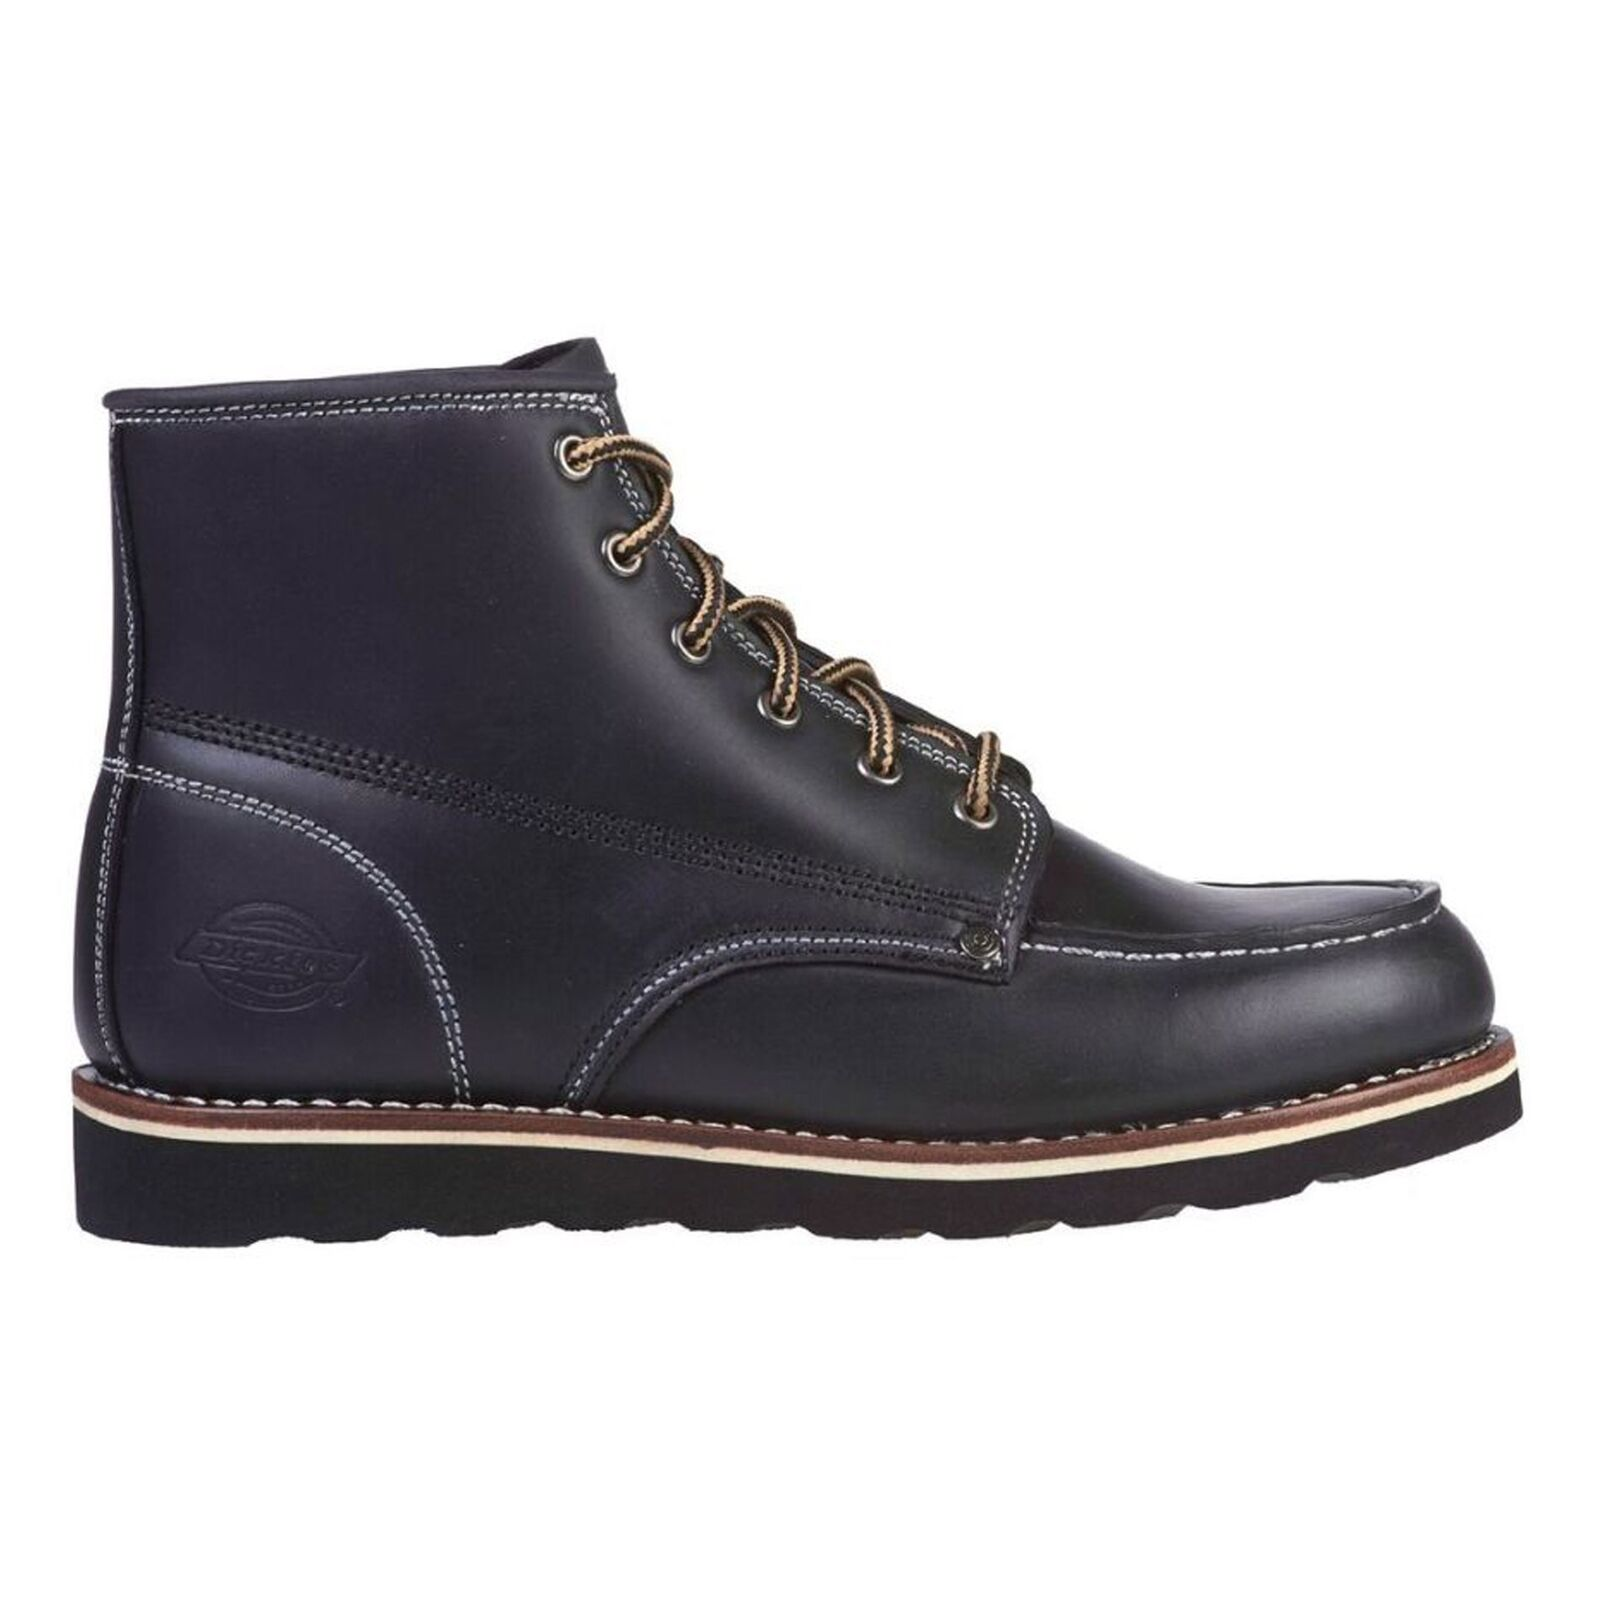 Dickies-new orleans bota 09000038 negro